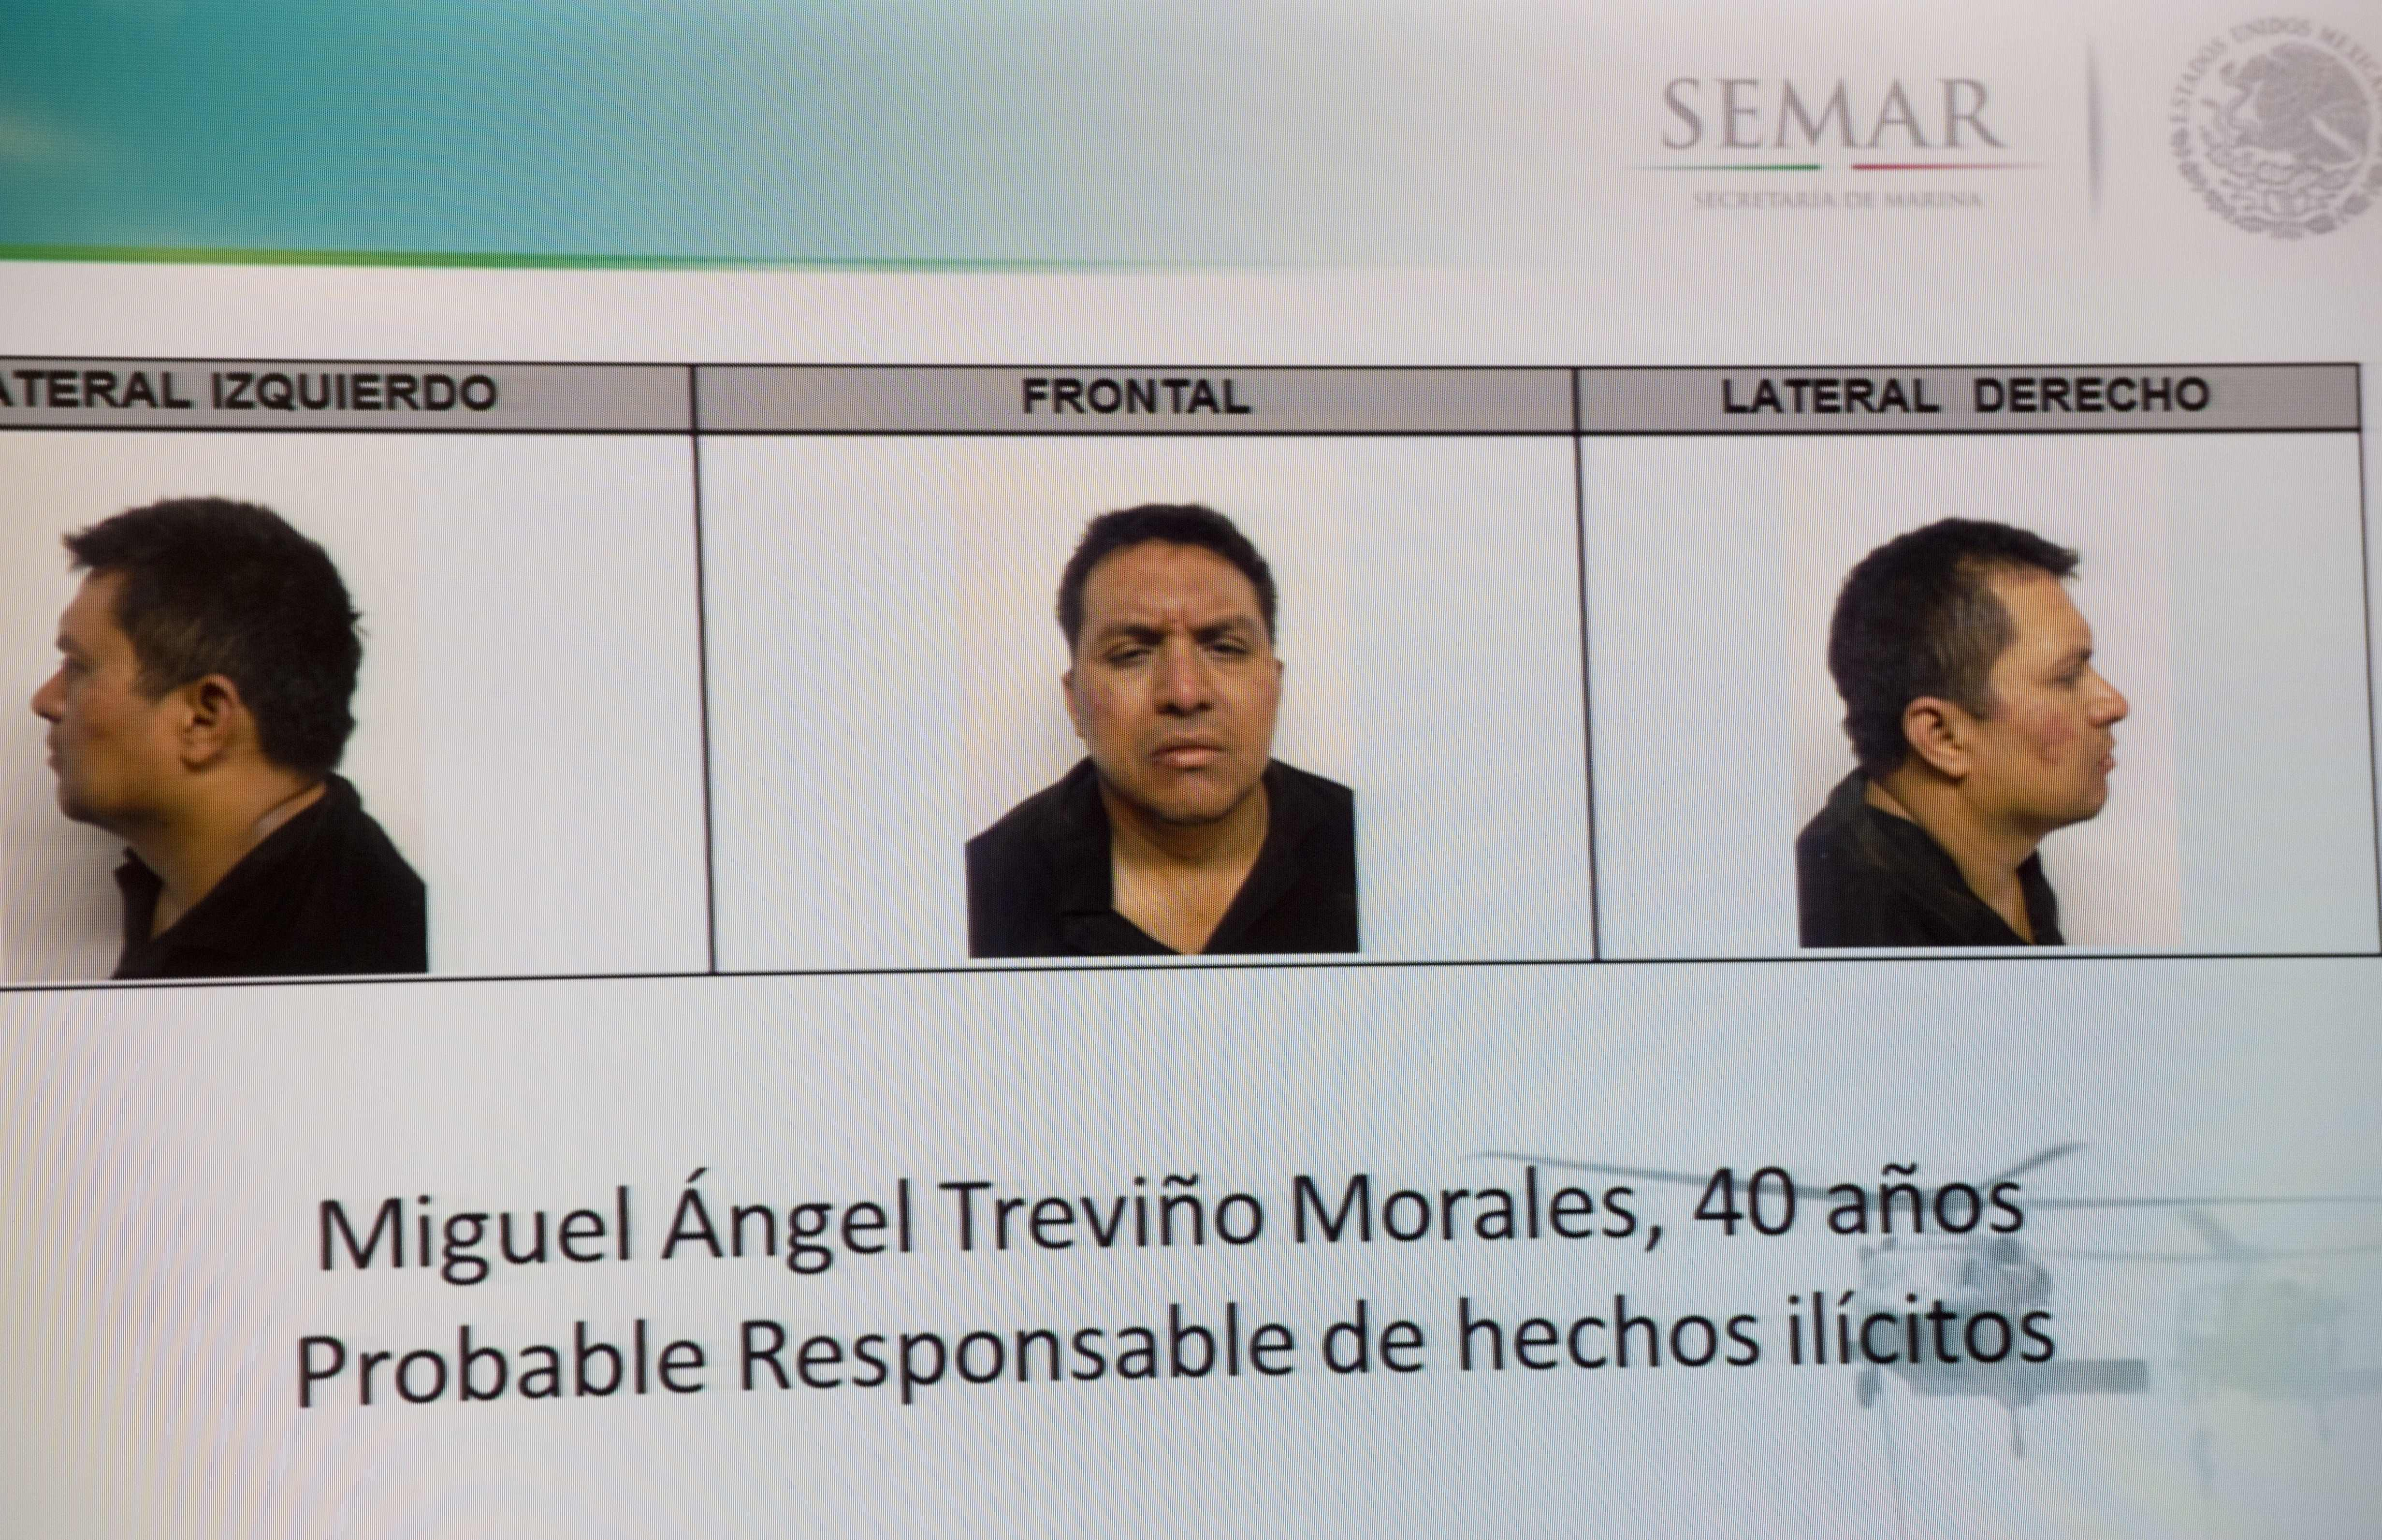 """Picture taken from a sreen of the alleged maximun leader of drugs Mexican cartel """"Los Zetas"""", Miguel Angel Trevino Morales, presented in combo pictures during a press conference at the head quarter of Interior Ministry on July 15, 2013 in Mexico City. According to a spokesman Trevino was arrested early morning during a military operation en Nuevo Laredo. AFP PHOTO/ Yuri CORTEZ (Photo credit should read YURI CORTEZ/AFP/Getty Images)"""